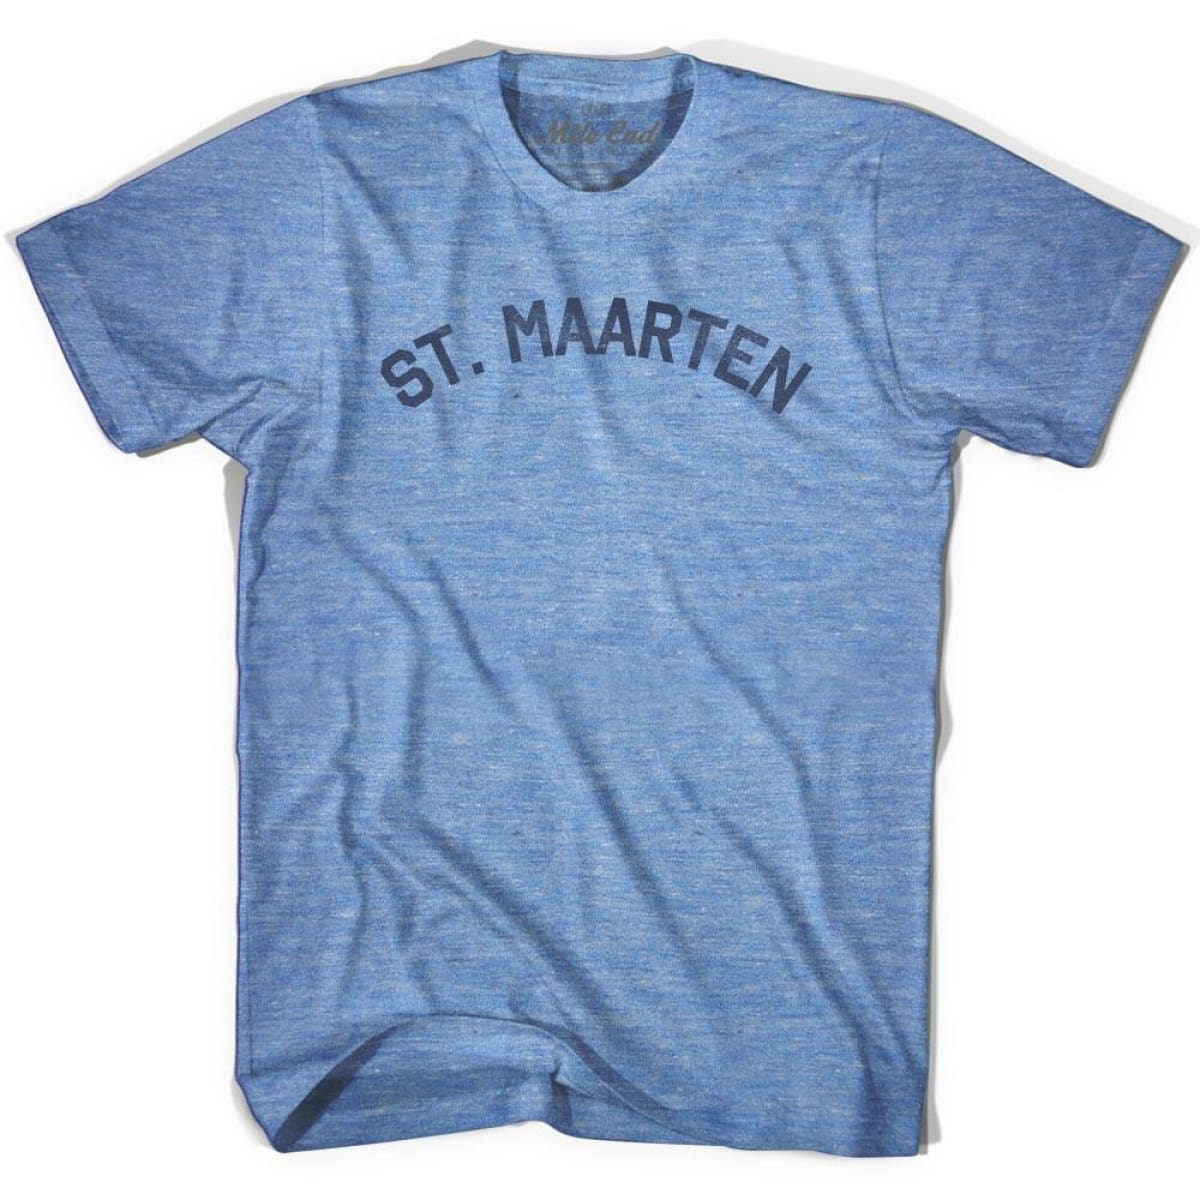 St. Maarten City Vintage T-shirt - Athletic Blue / Adult X-Small - Mile End City